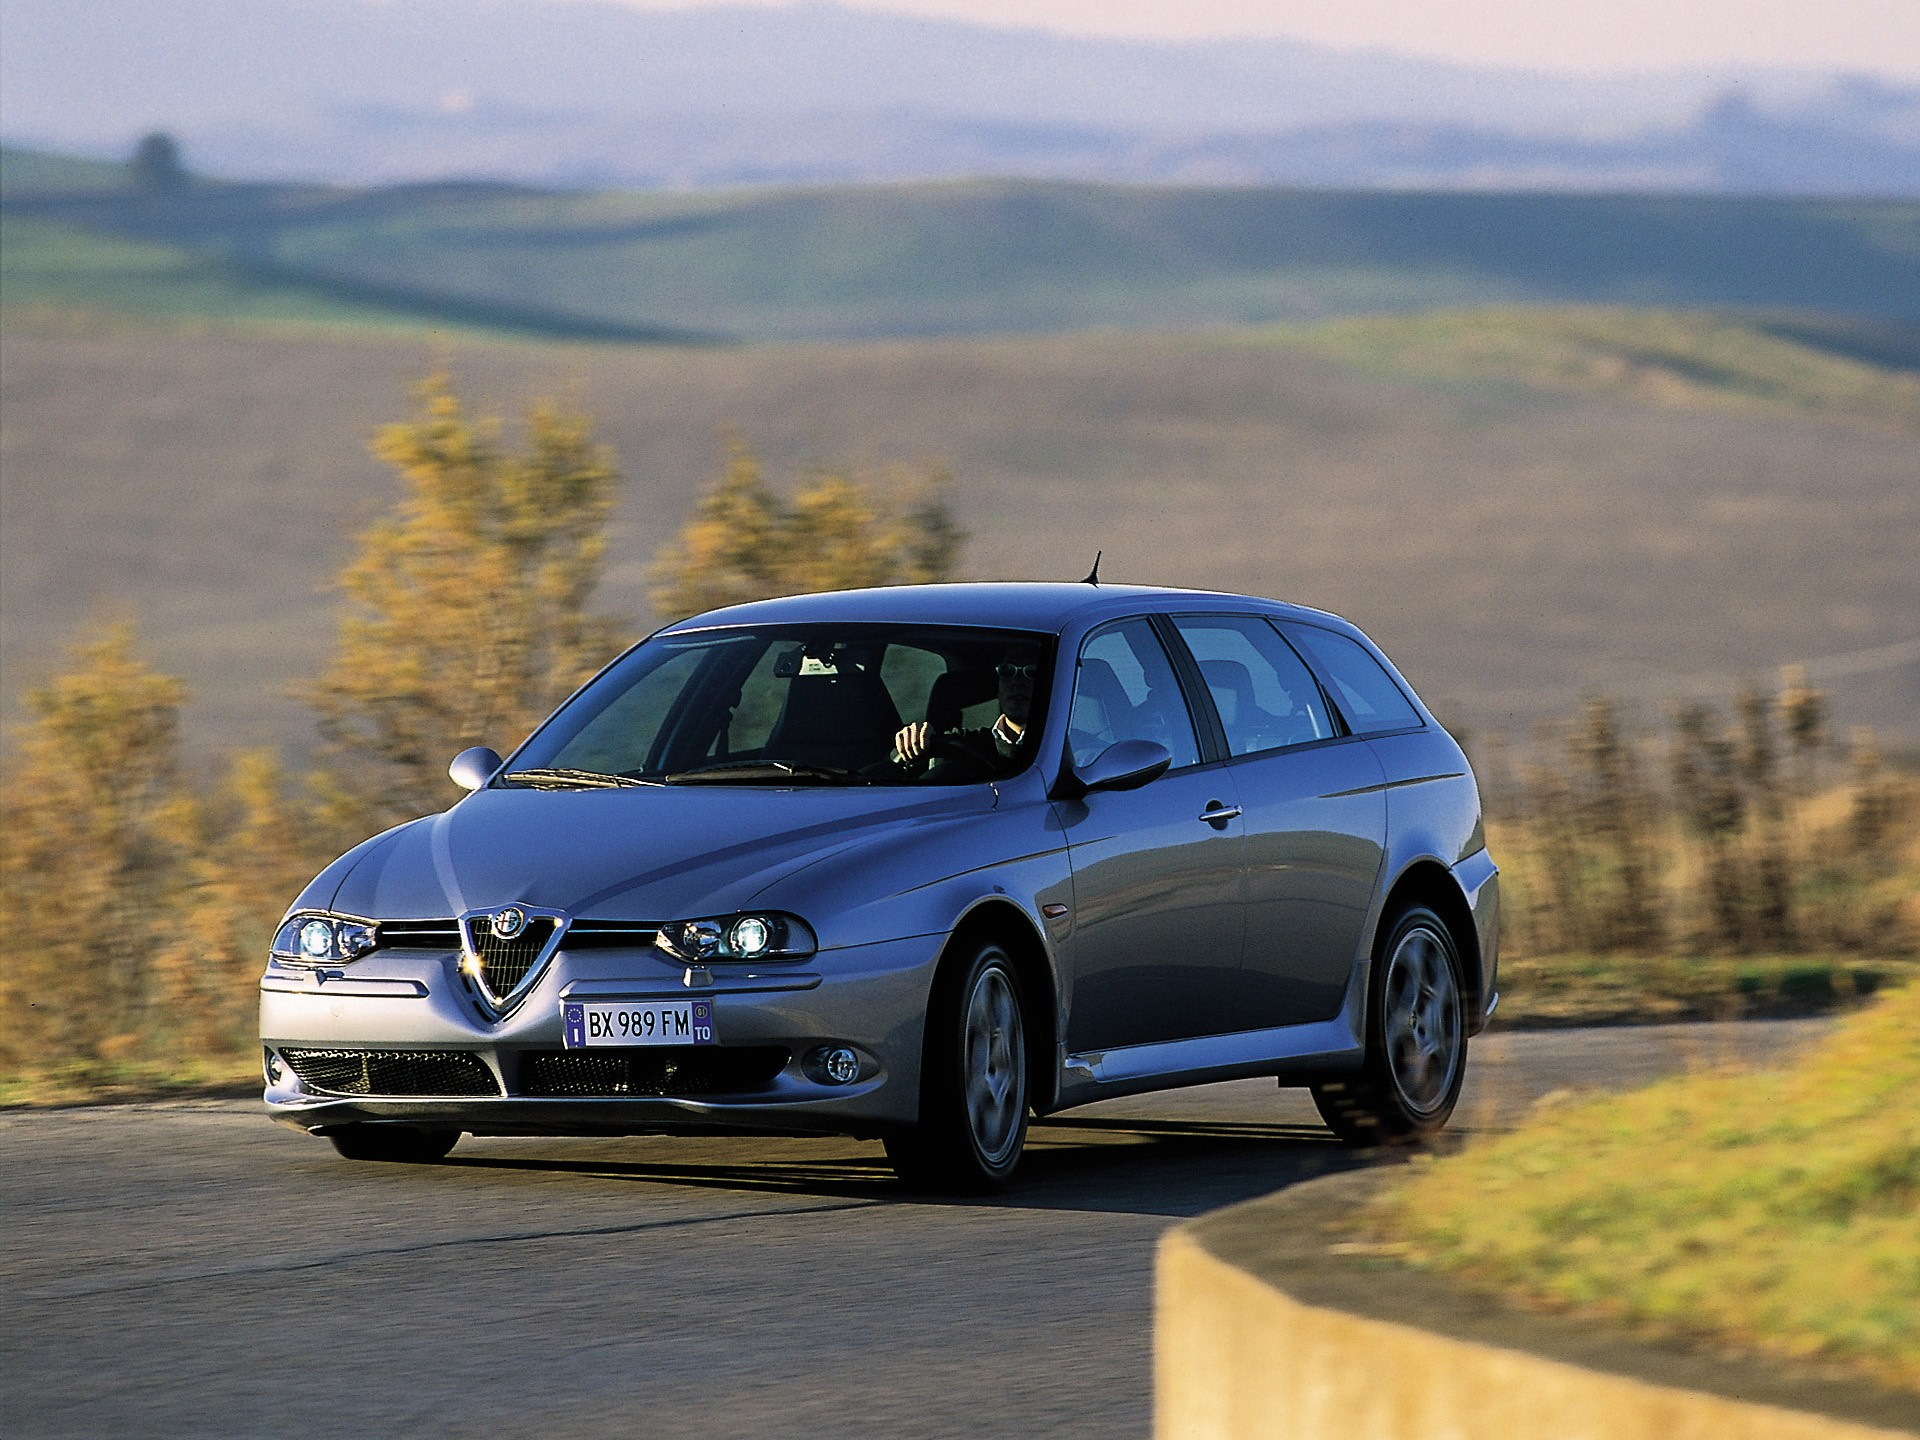 Alfa Romeo 156 Sportwagon Gta Specs Photos 2002 2003 2004 2005 Autoevolution